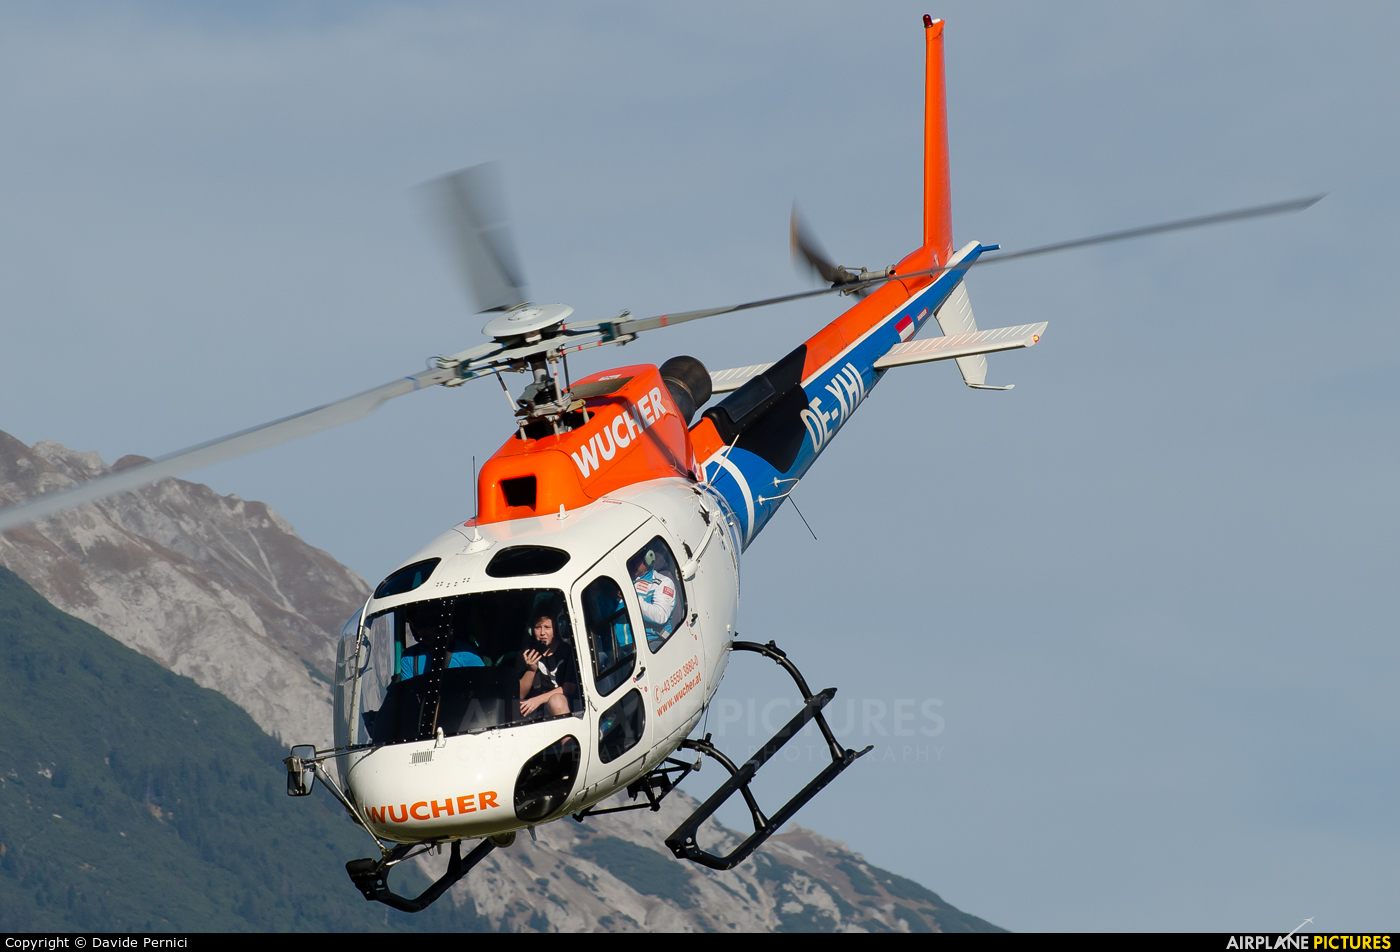 Wucher Helicopter OE-XHL aircraft at Innsbruck